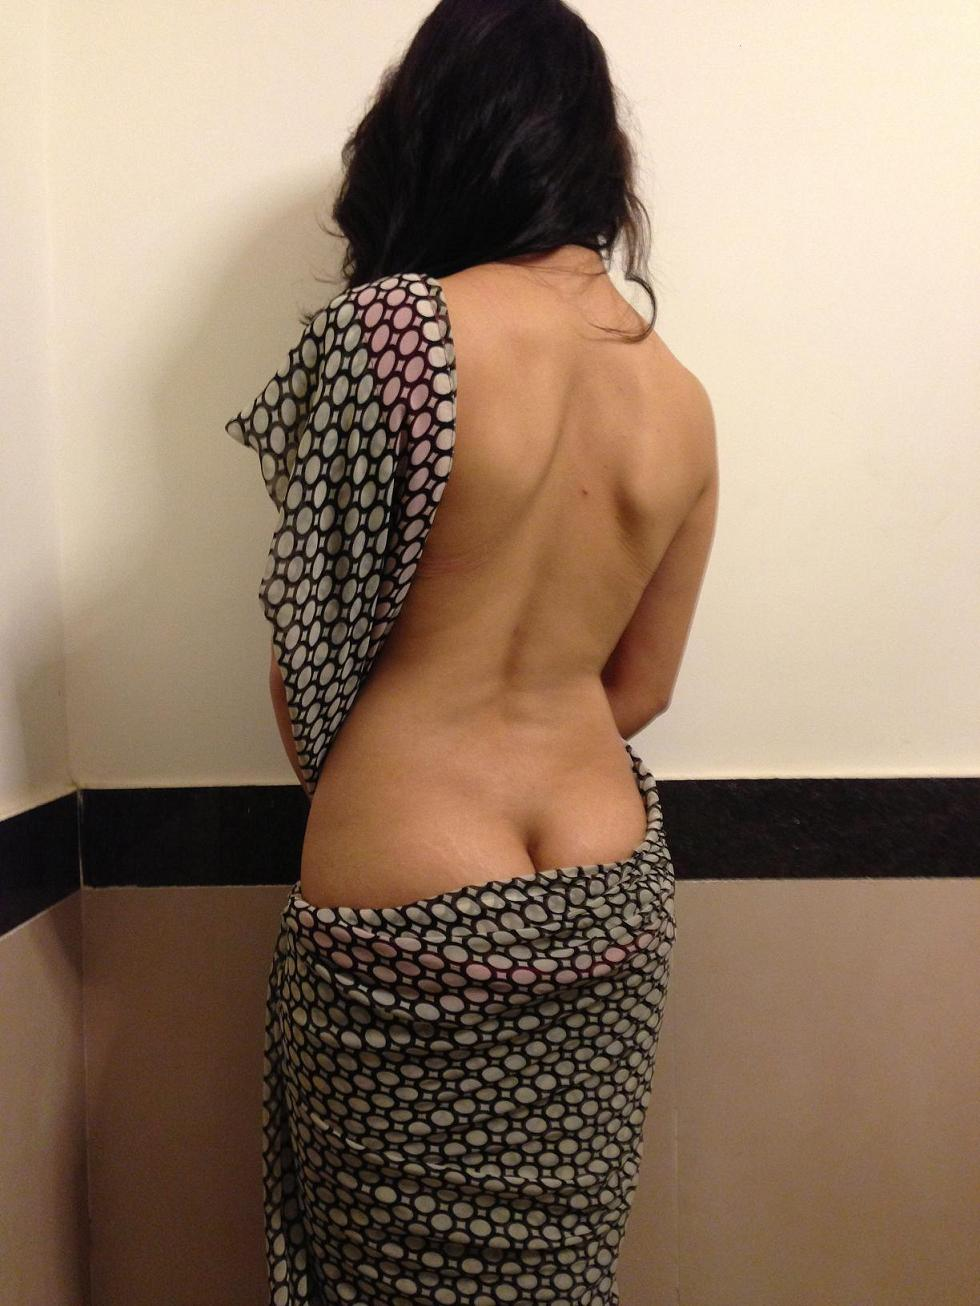 desi girl hot photos nude best